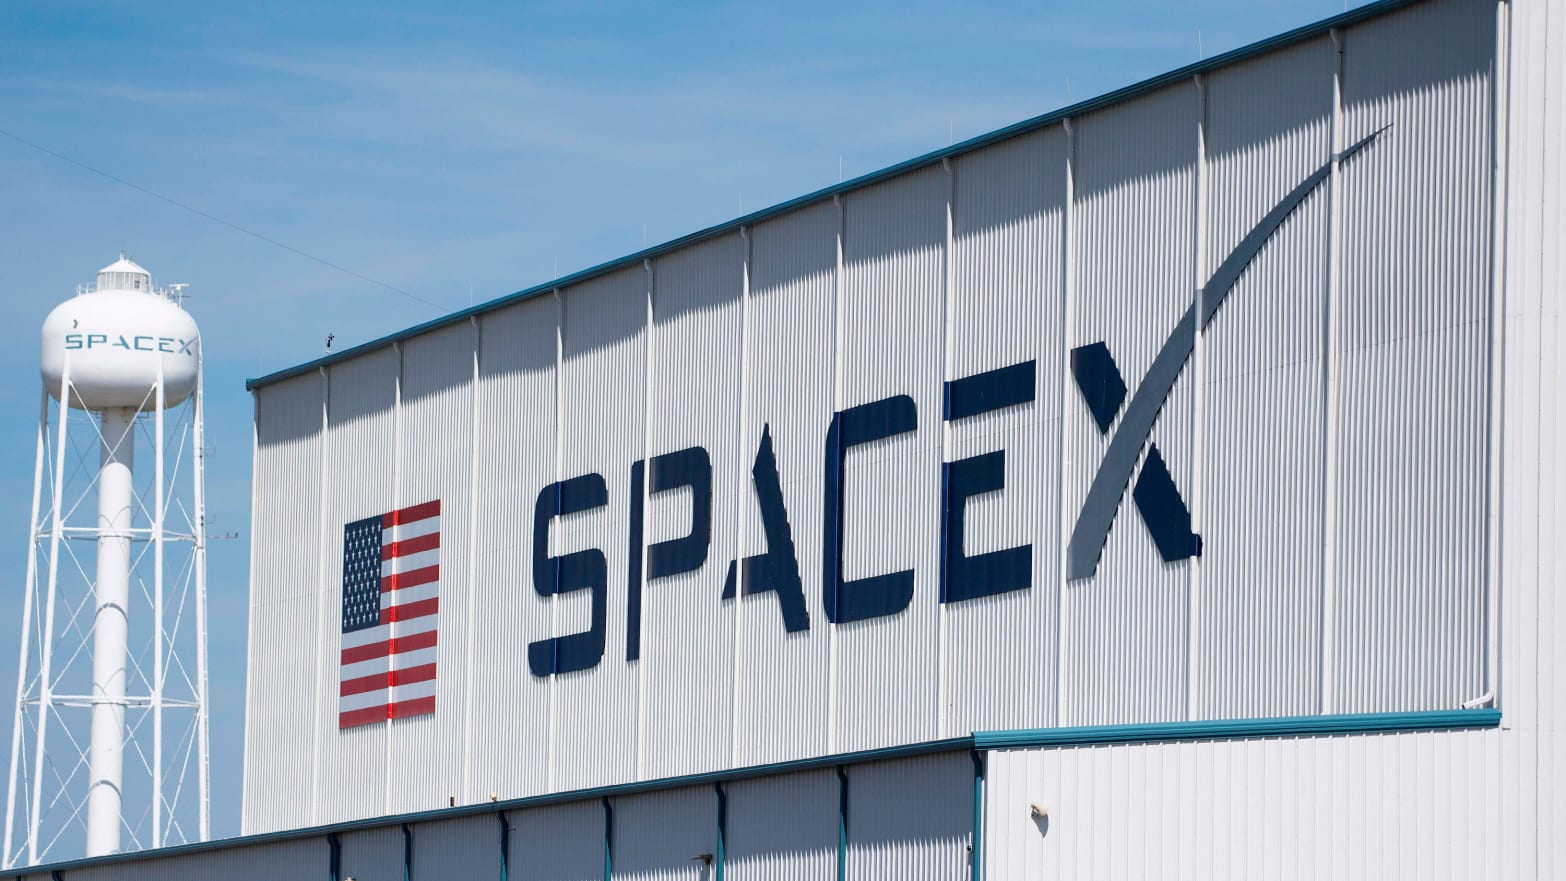 SpaceX's Falcon 9 Rocket Launches Human Tissue Into Microgravity